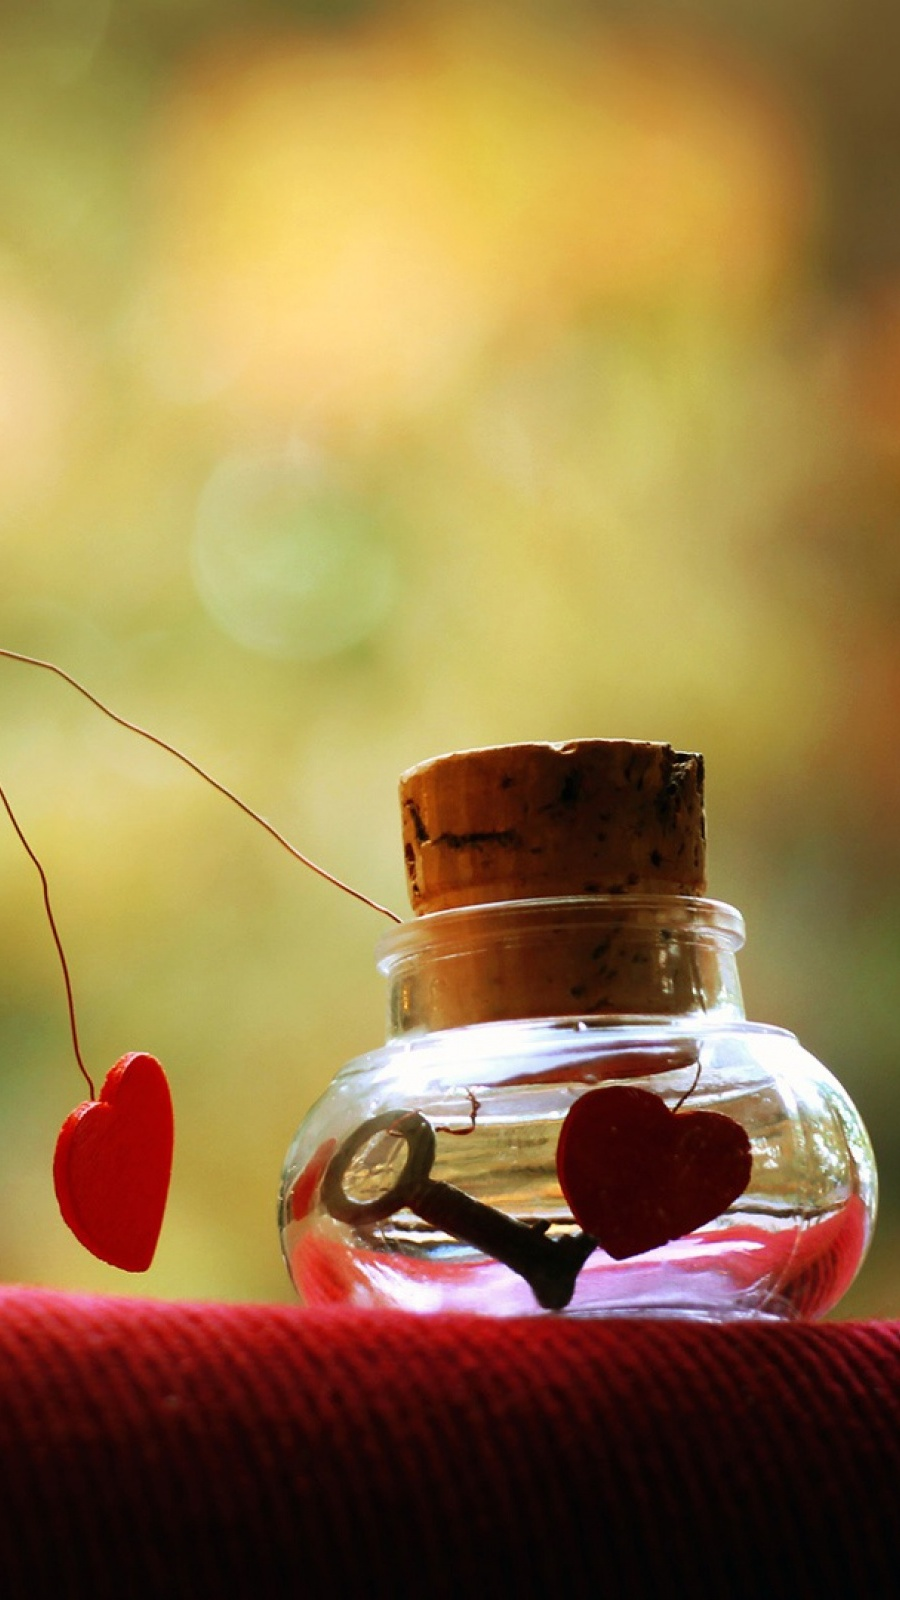 30 Valentine S Day Hd Mobile Wallpapers For Your Galaxy Phones Samsung Rumors